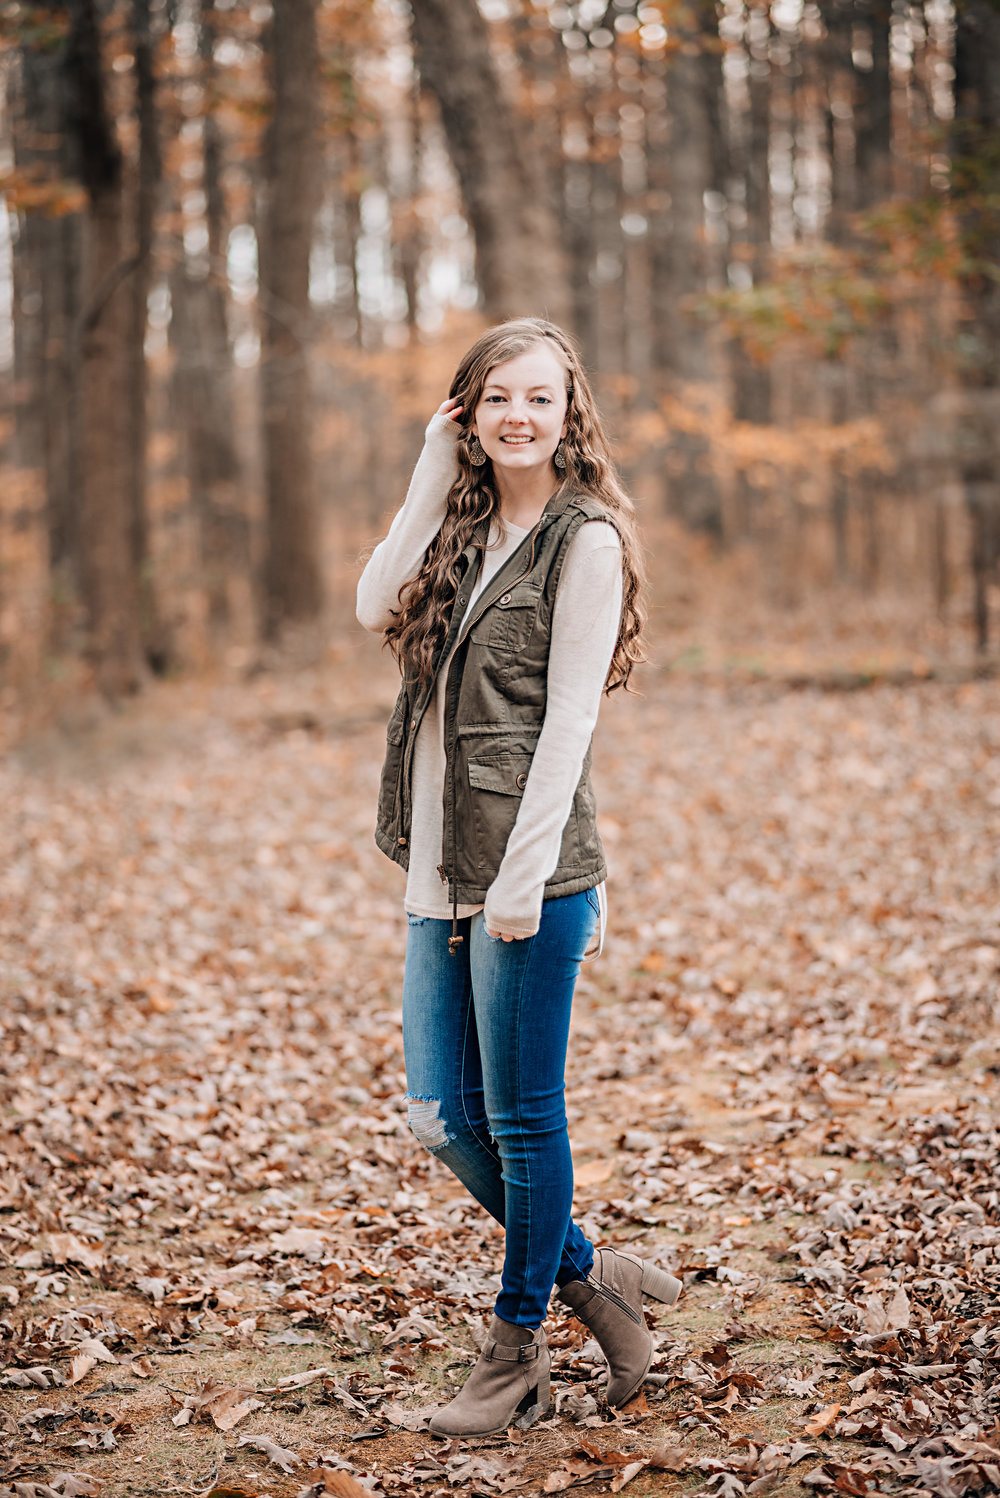 - Becca Mathews: Maryland Senior, Equine, and Couples Photographer